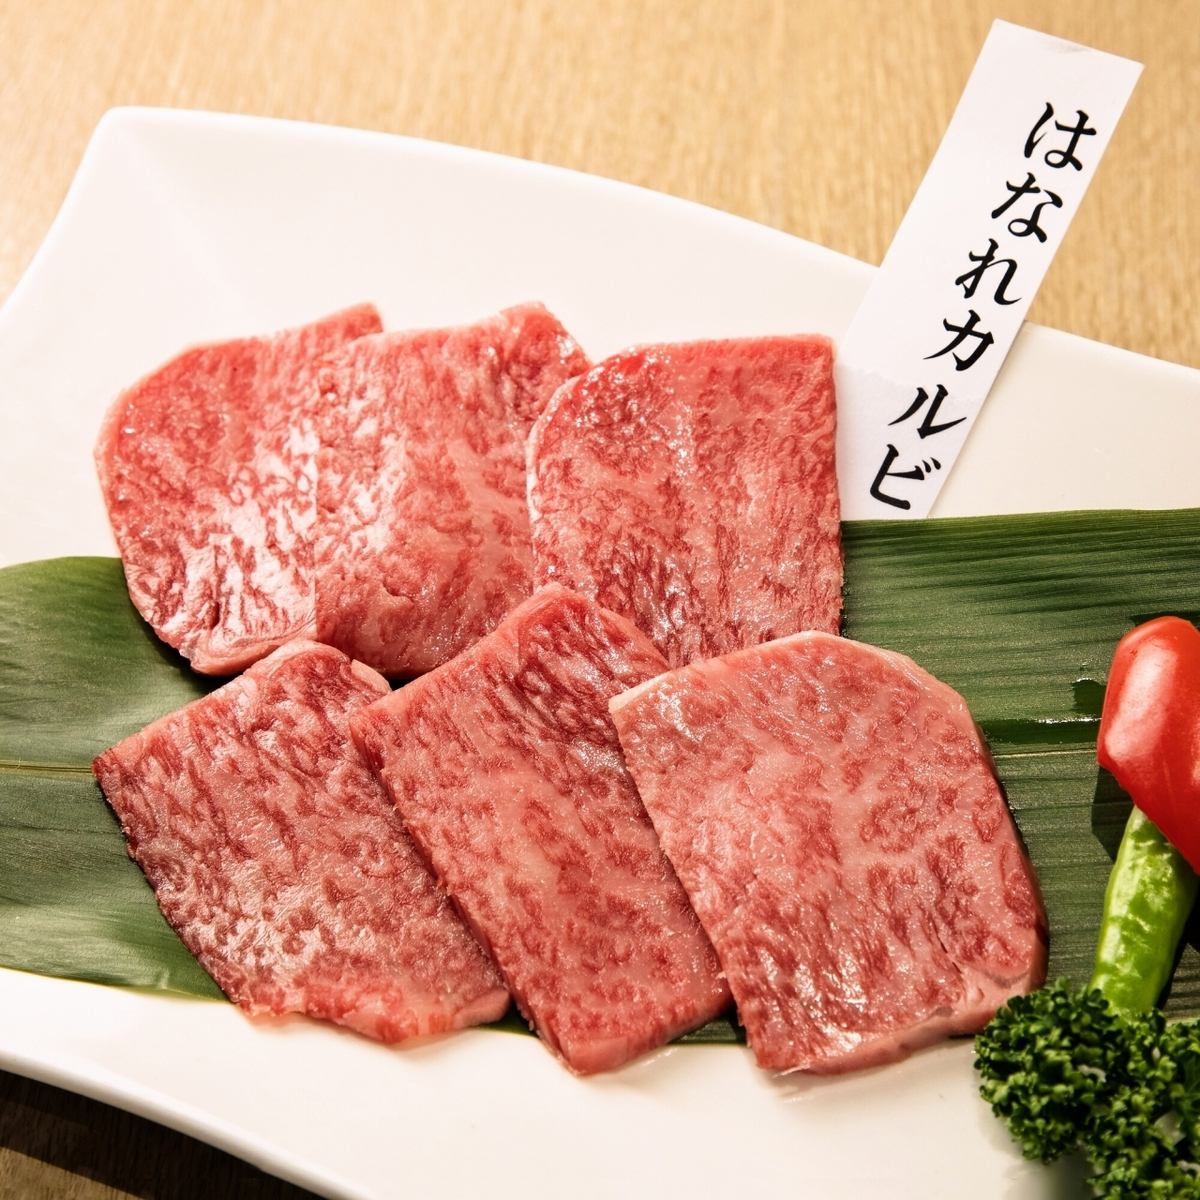 High-quality meat can be eaten frequently ♪ All-you-can-eat women 3000 yen Men 5000 yen! Draft beer as well!